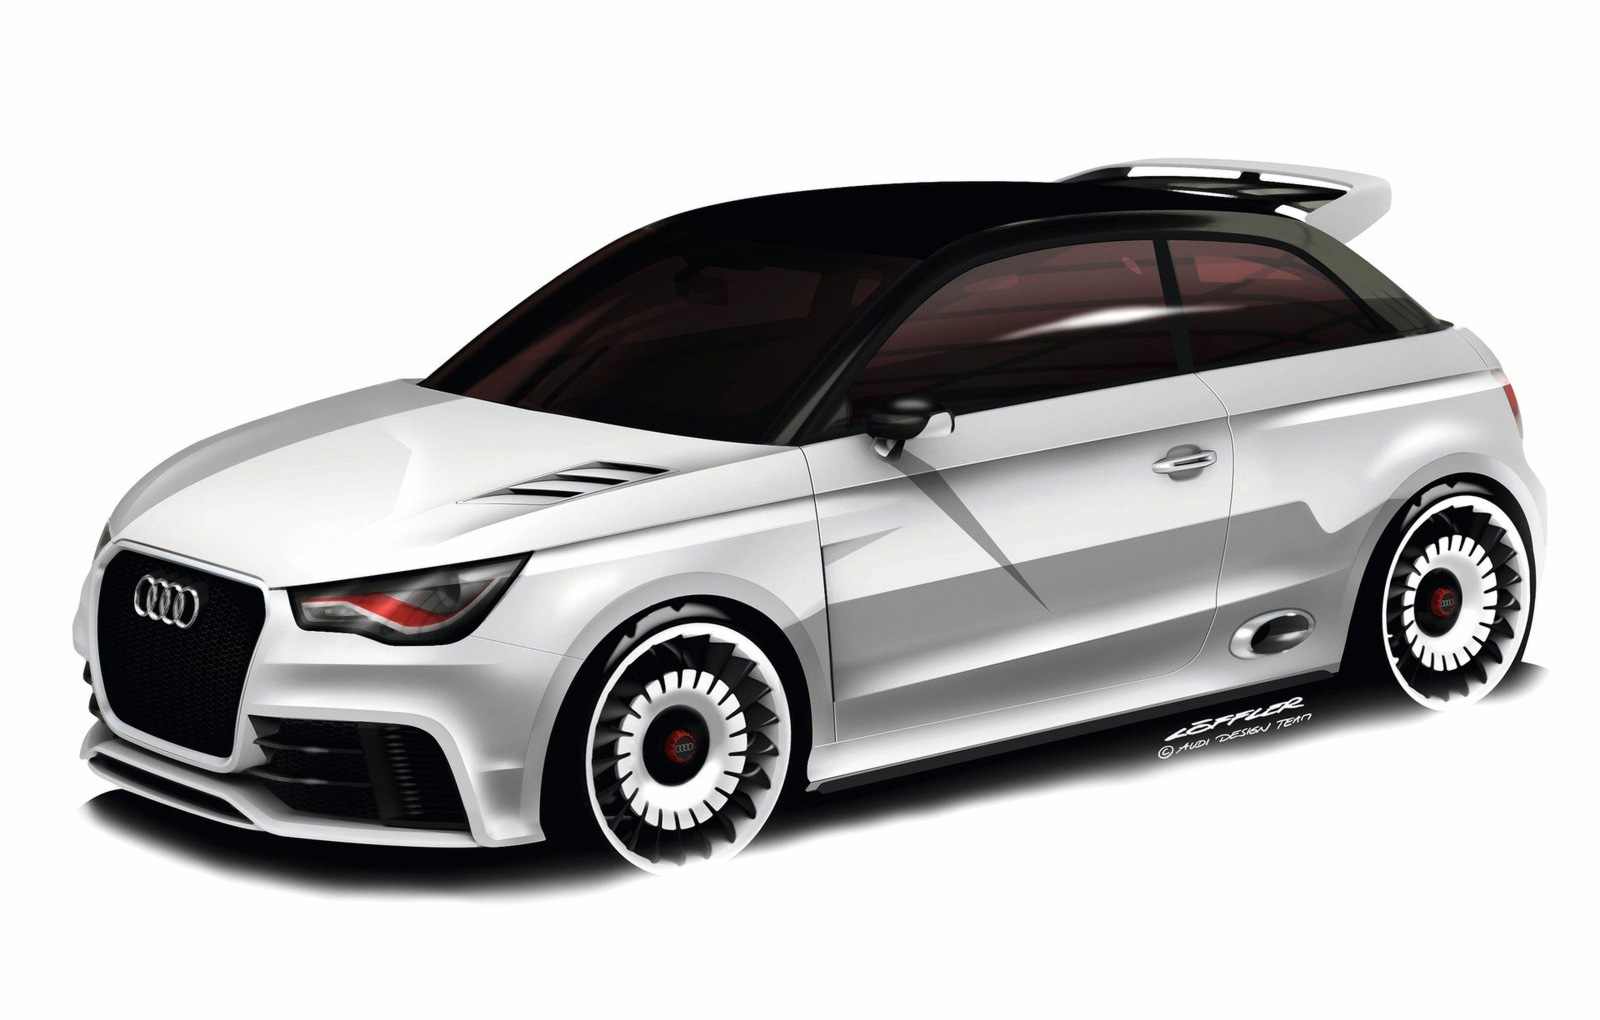 2019 Audi A1 clubsport quattro Concept | Car Photos ...